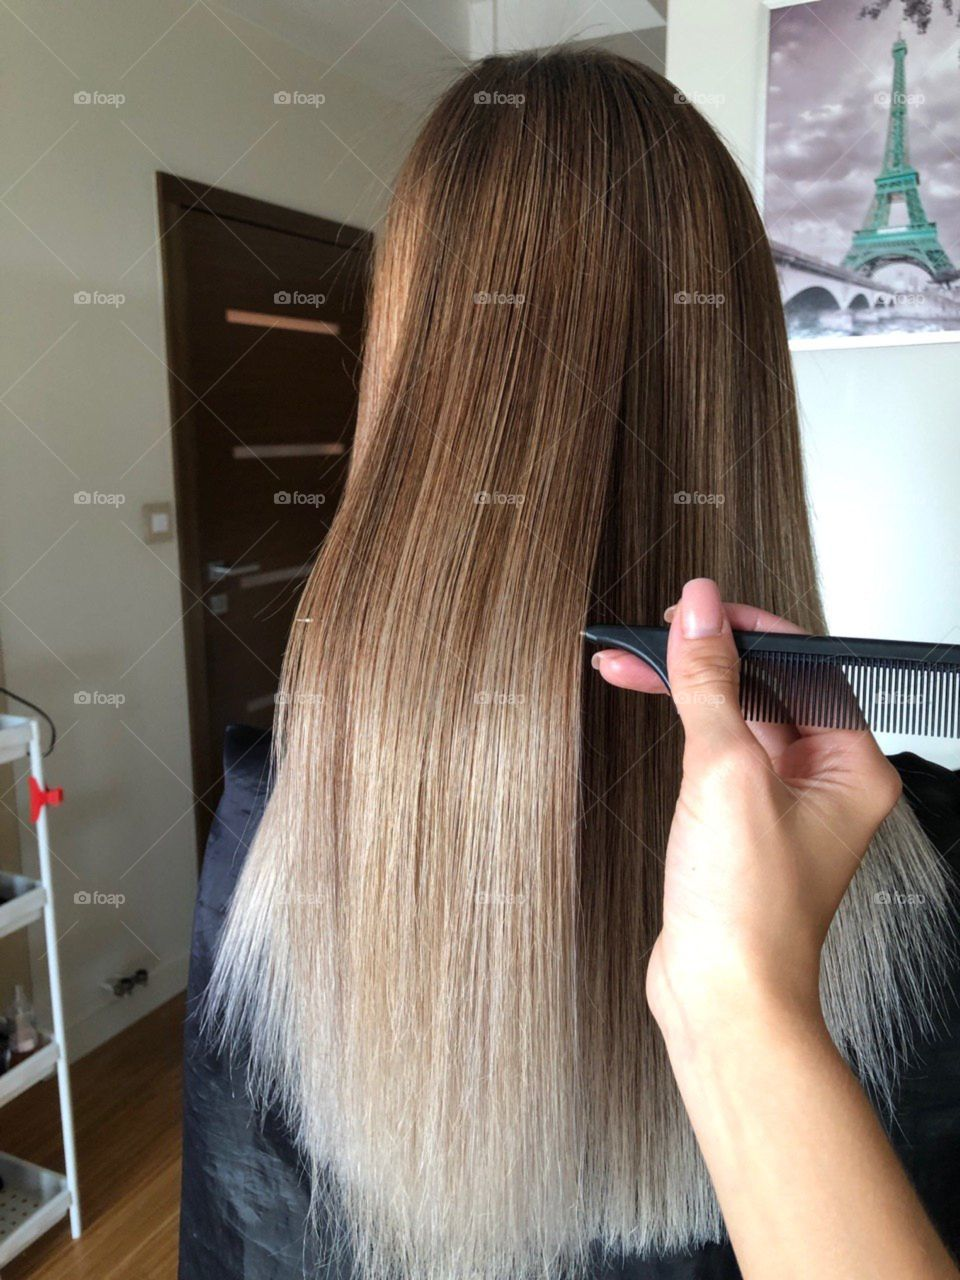 Hair style: balayage, air touch, hair coloring